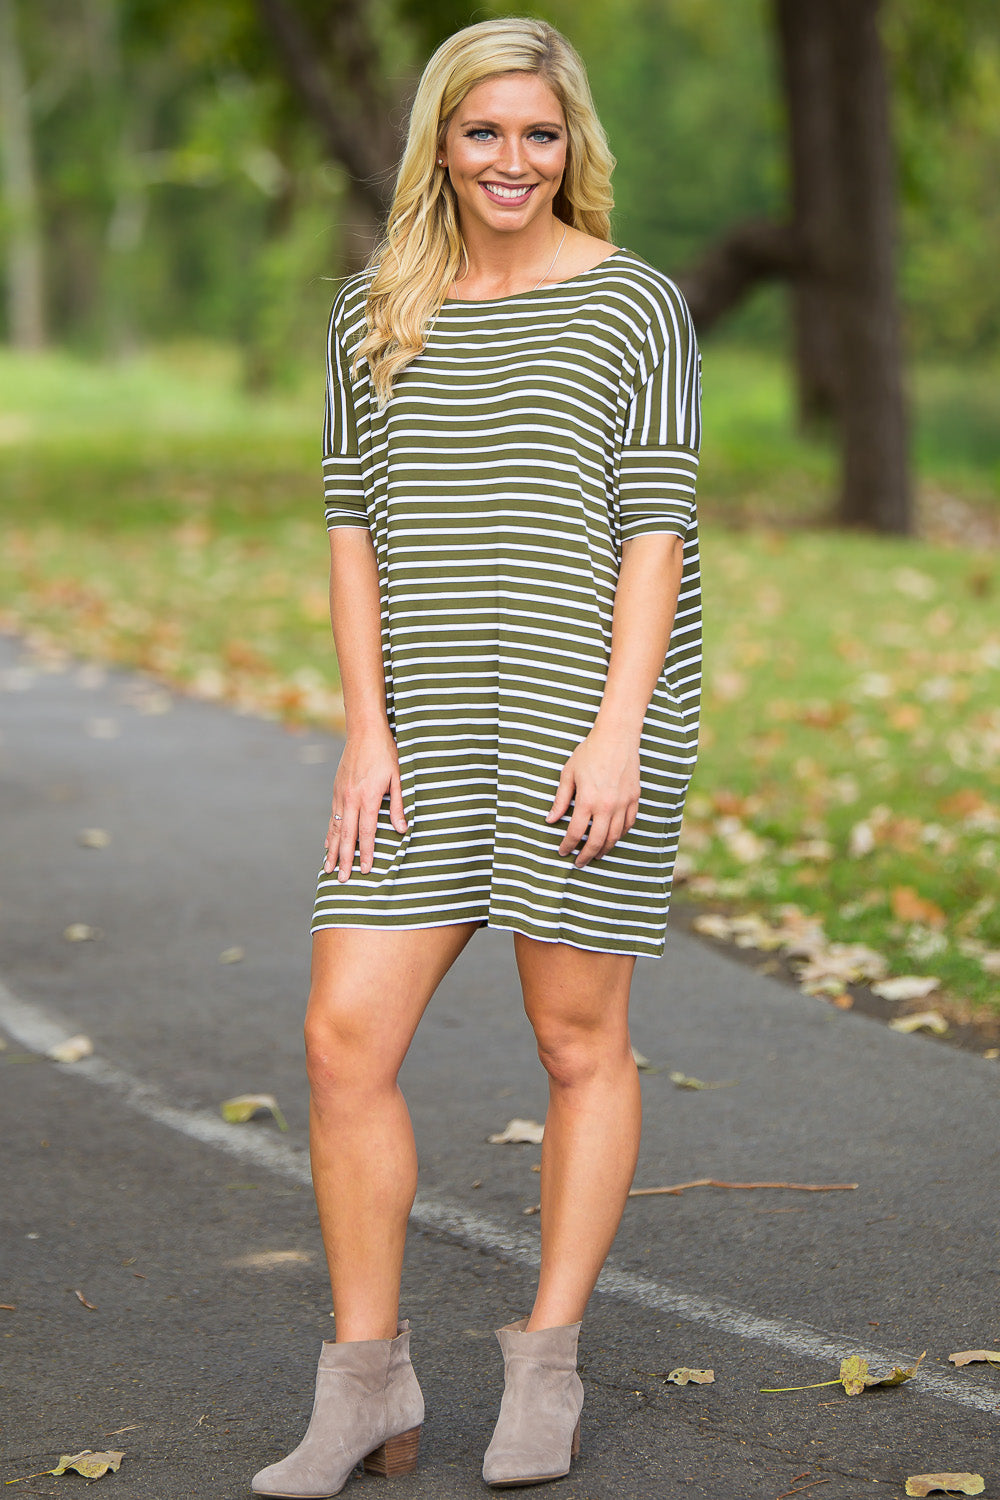 Half Sleeve Piko Tunic - Olive/White - Piko Clothing